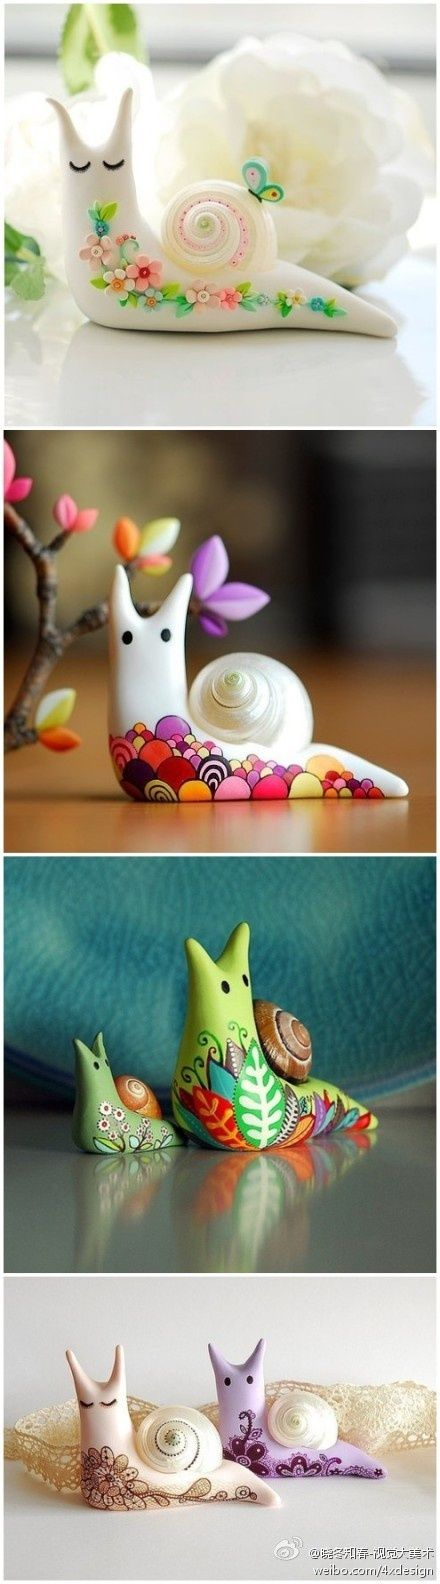 Painted snails. Weekend project for the kids, make from polyclay one day and paint the next.